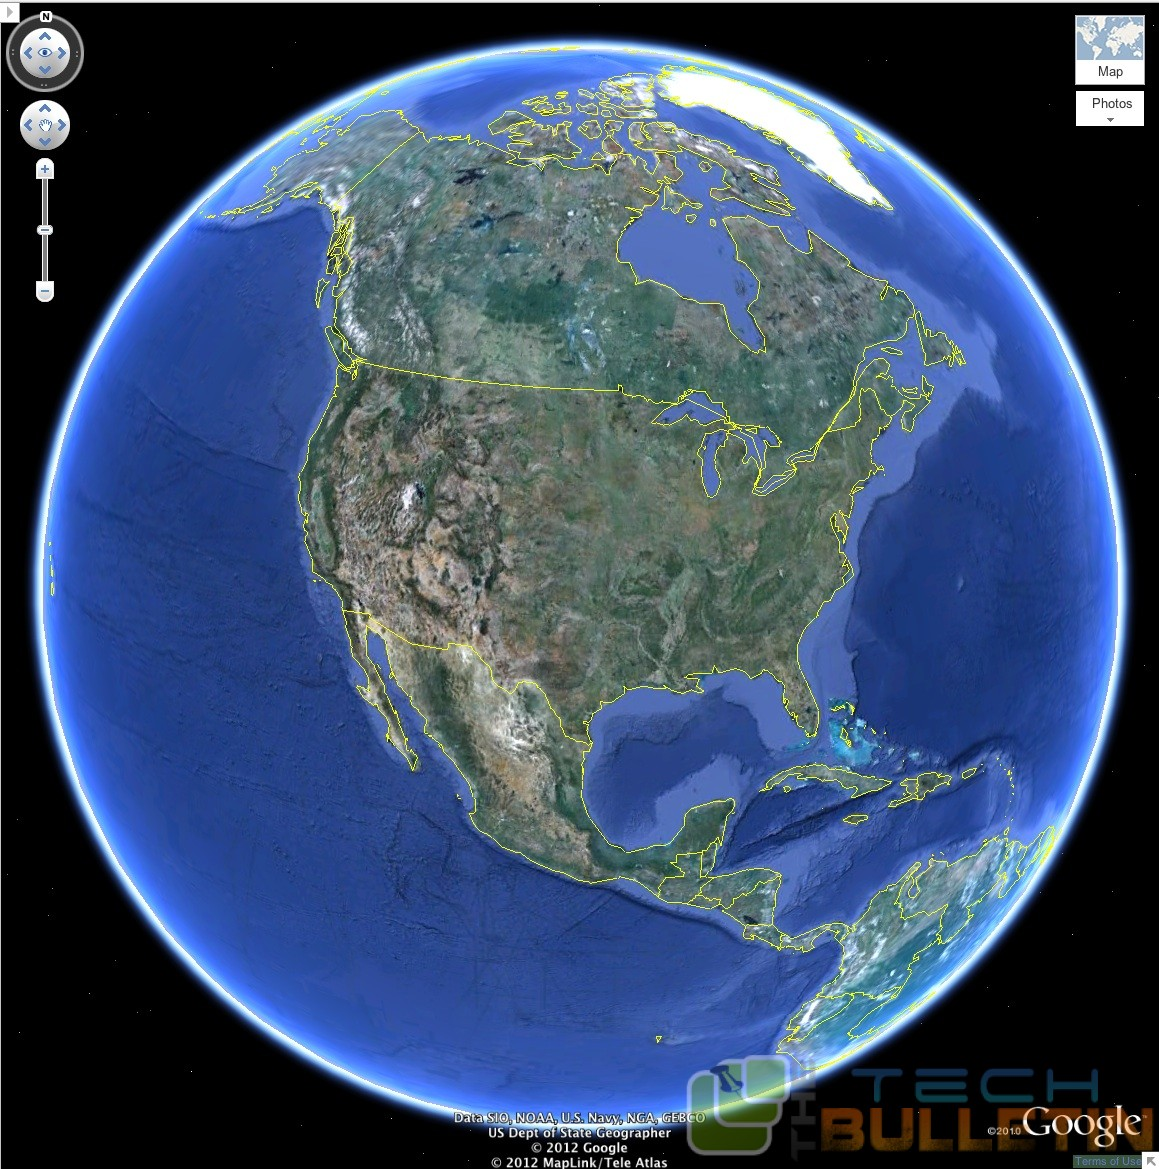 Google Introduced Earth View For Chrome The Tech Bulletin - Google maps earth view